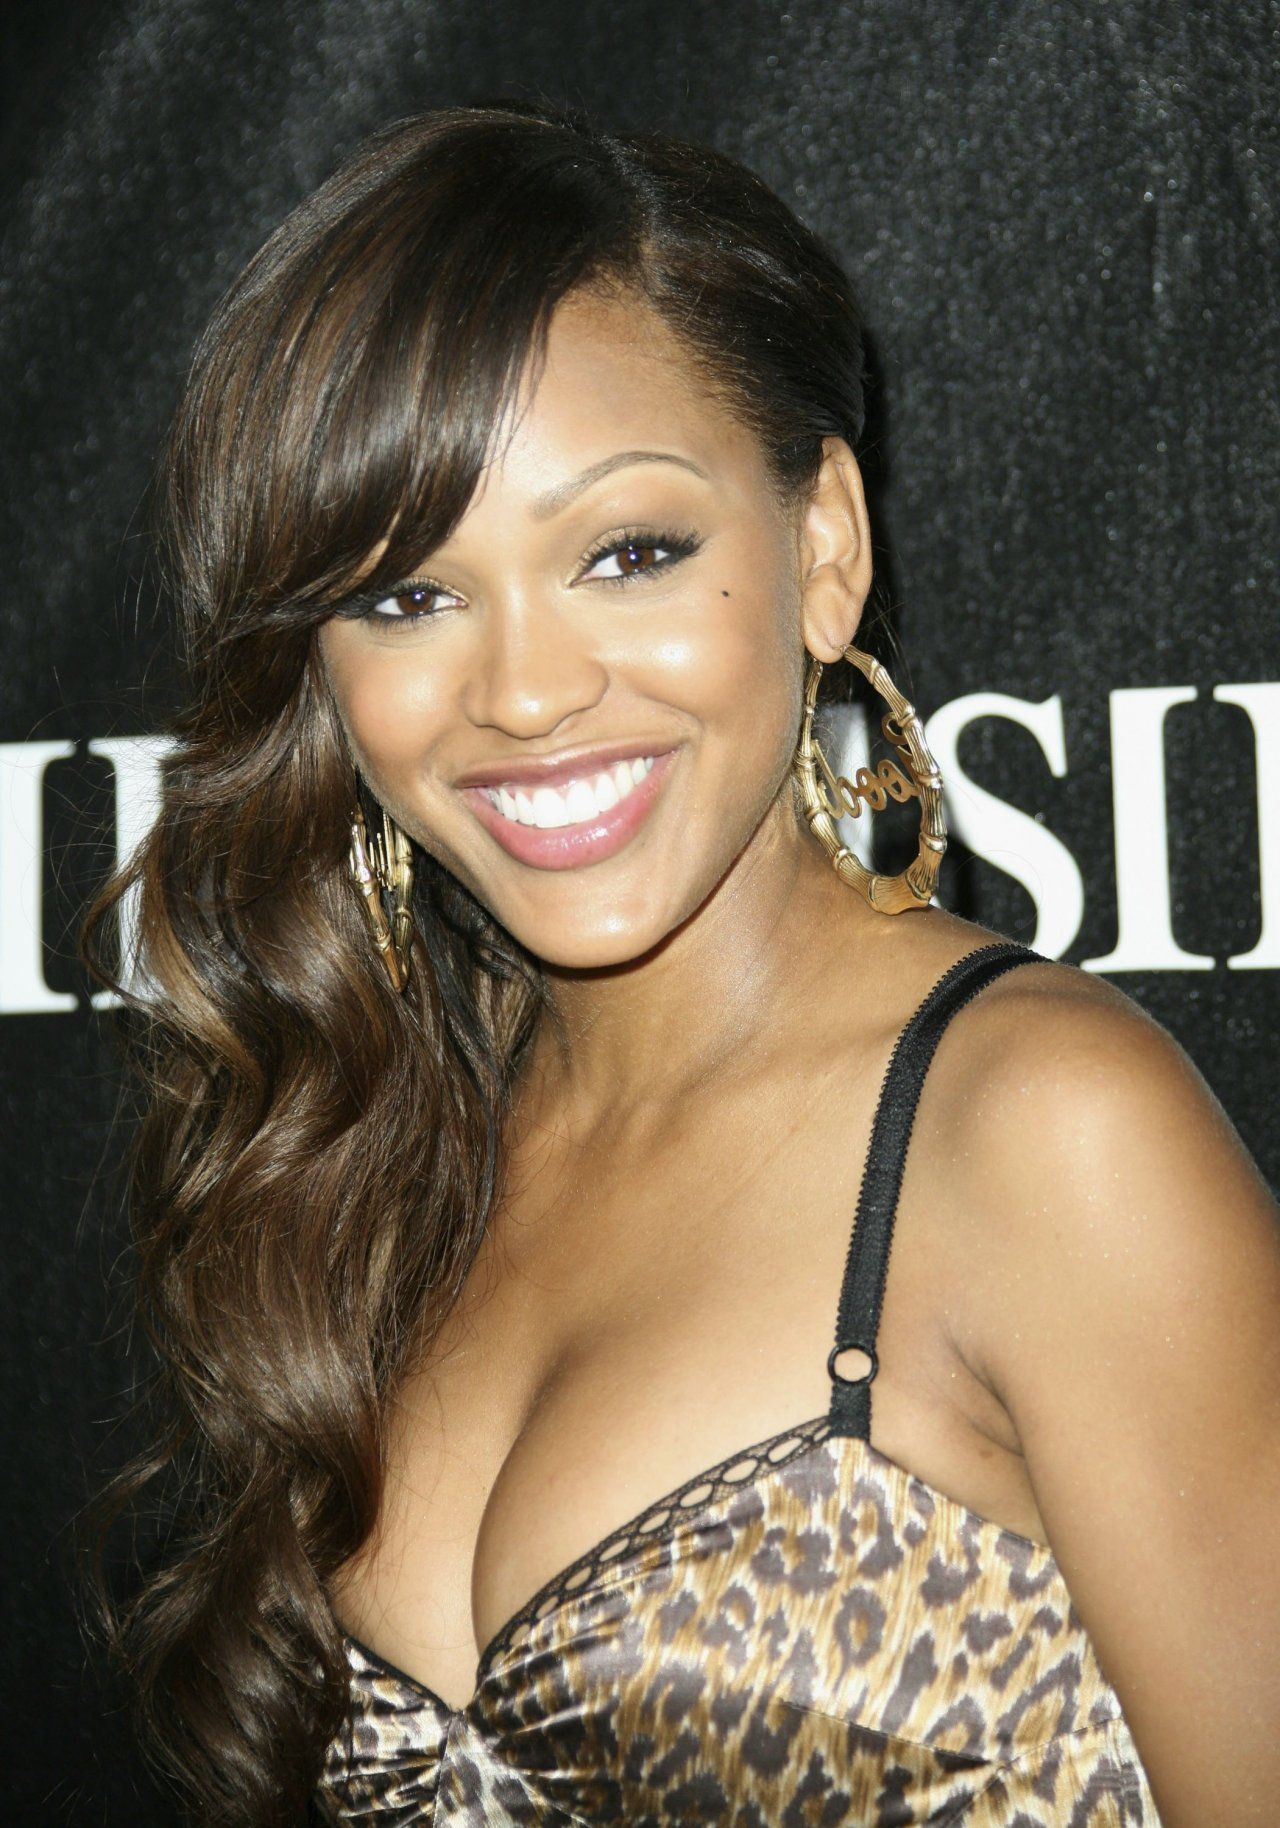 Megan good meagan good wallpapers 98963 popular meagan good megan good meagan good wallpapers 98963 popular meagan good pictures photos baditri Images